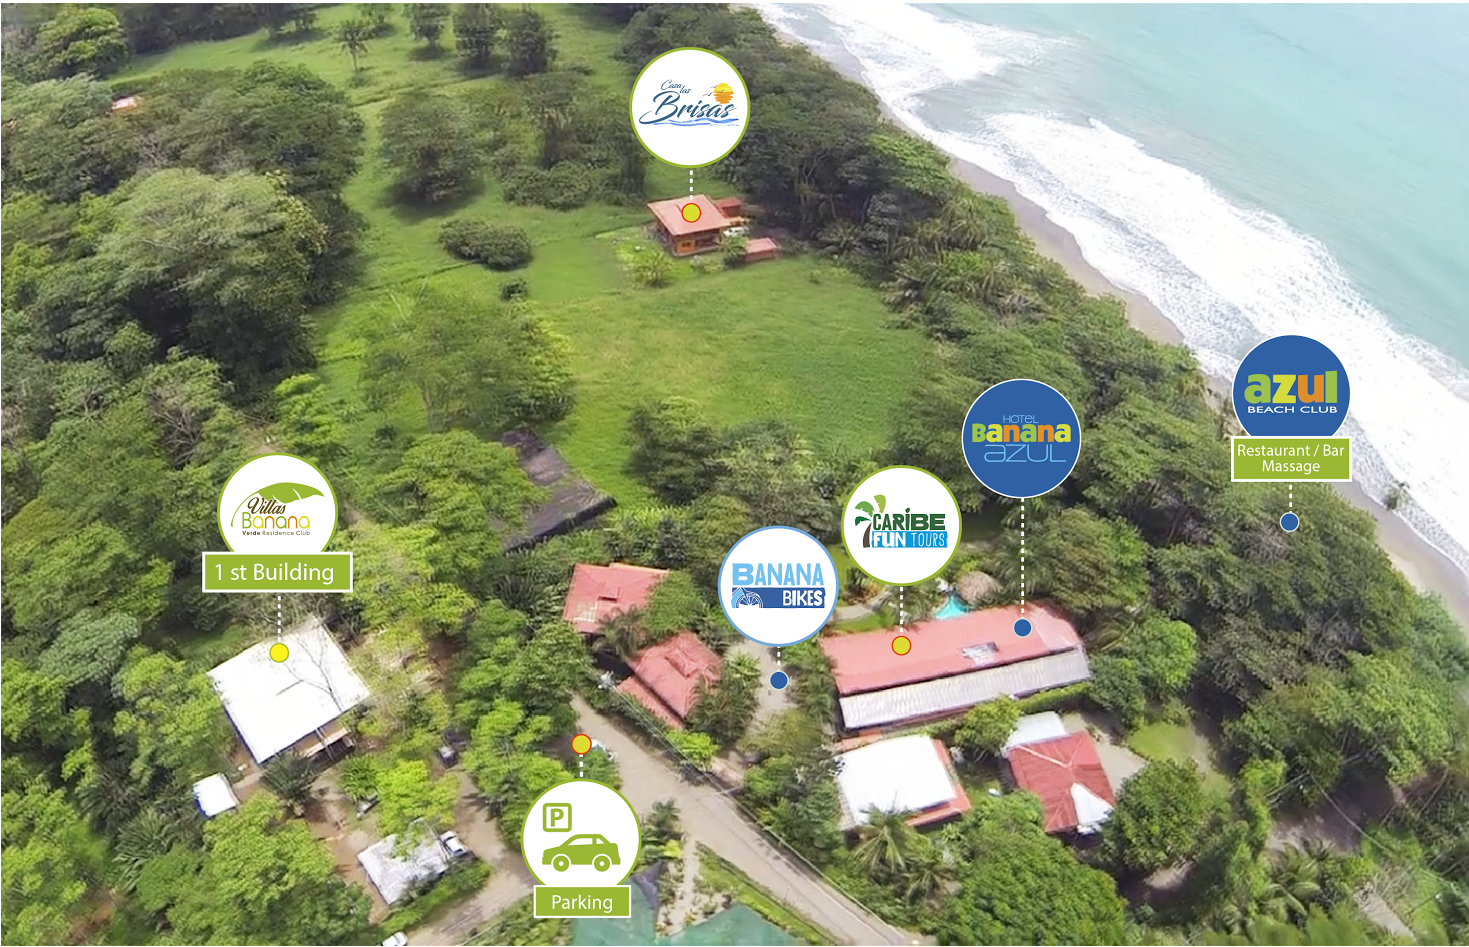 Overhead view of Banana Azul property